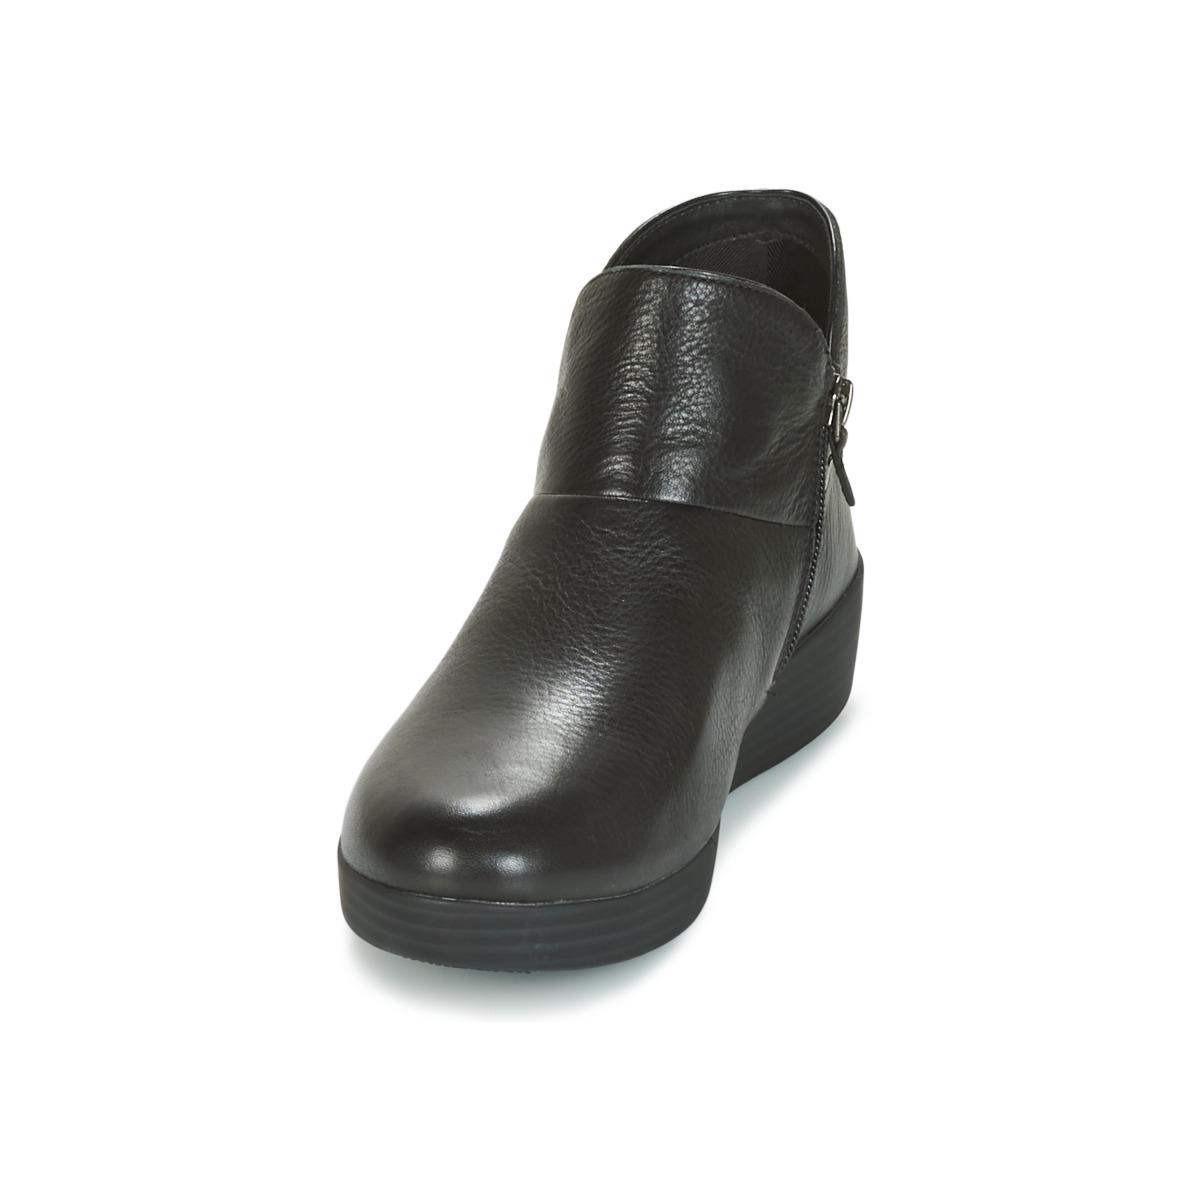 Fitflop Supermod Leather Ankle Boot Ii Mid Boots in Black - Save 21%